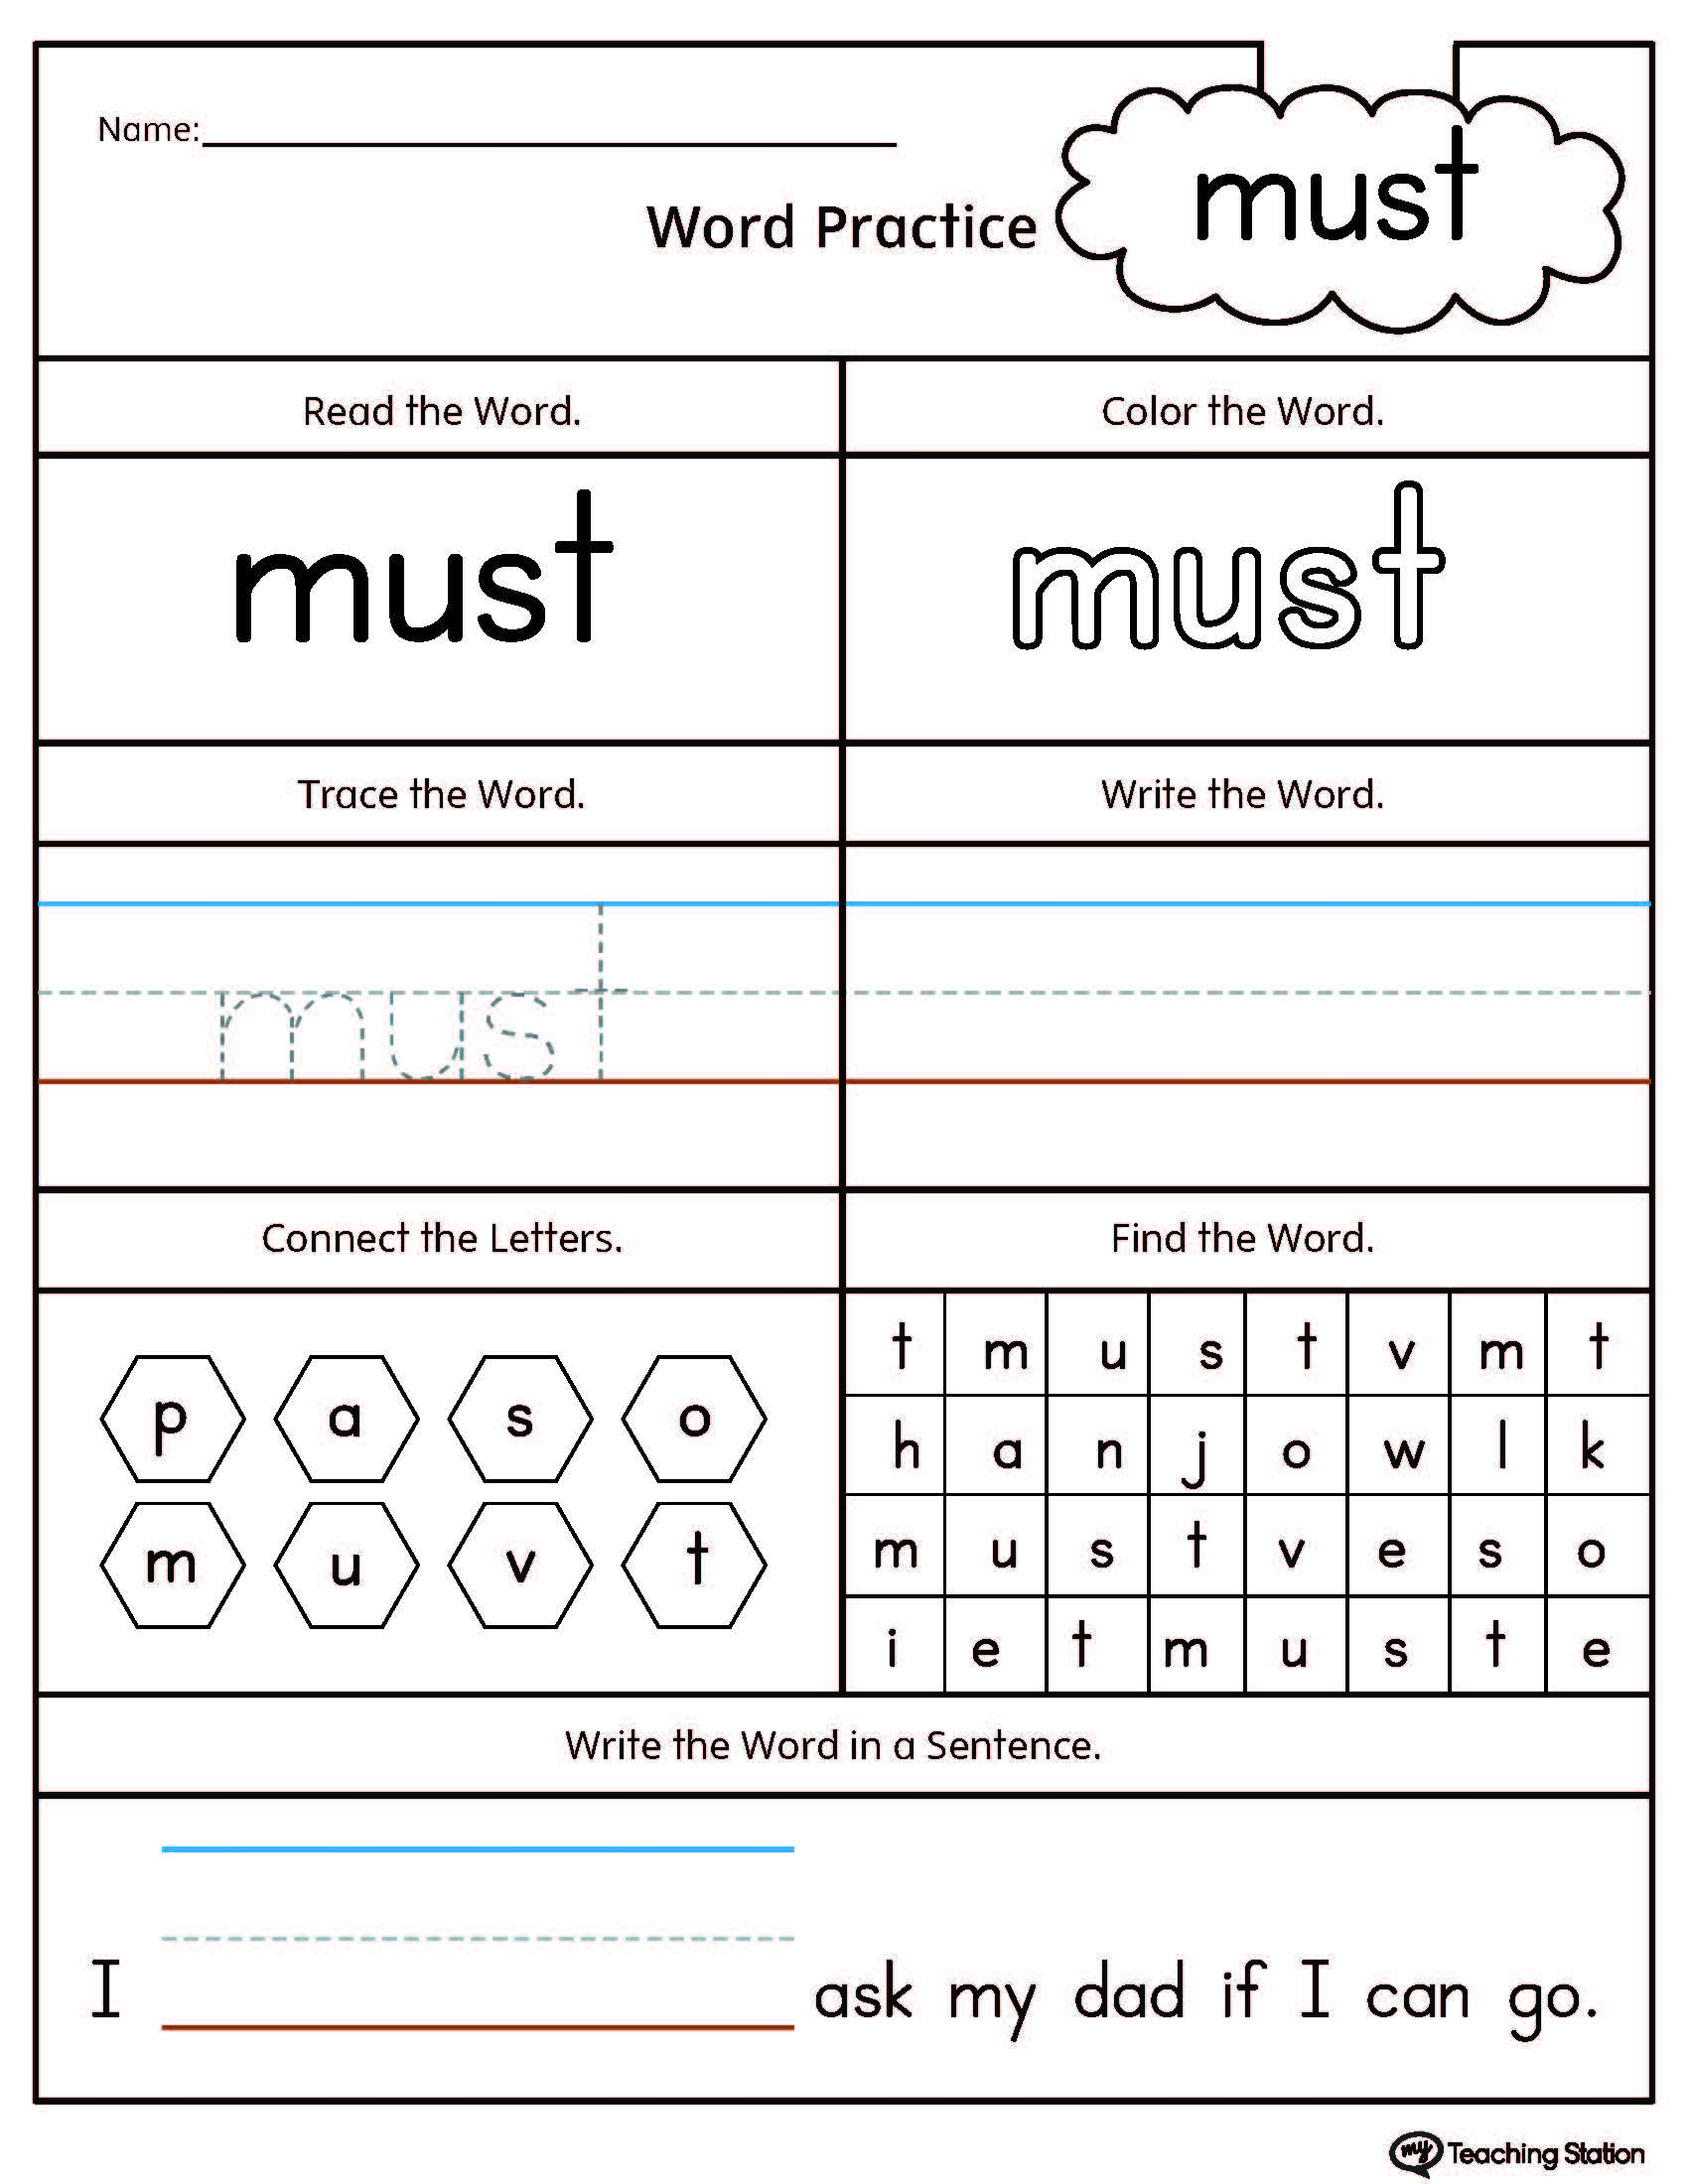 Free Pre   Kindergarten Sight Words Worksheets   Printable moreover Word Worksheets For Kindergarten Kindergarten Sight Words Worksheets additionally Kindergarten High Frequency Words Printable Worksheets further Kindergarten High Frequency Words Printable Worksheets as well Endearing Worksheets for Teaching Sight Words for Your Free likewise 19  sight words worksheets kindergarten sight words worksheets pre also Kindergarten Sight Words Sentences Primer Sight Word Worksheets As likewise Kindergarten Worksheets Sight Word Sentences   Homeshealth info together with Collection Of Kindergarten Worksheets Free Sight Words Download Them additionally Printable The Sight Word Worksheet With Editable Practice Other Size furthermore Free Sight Word Worksheets for Kindergarten Kindergarten Sight Words as well  also  furthermore Kindergarten Sight Words Worksheet To Tracing Worksheets Free as well mon Core Kindergarten Sight Words Unique Language Arts Worksheets further Printable Worksheets for Kindergarten Sight Words Beautiful 66. on sight word worksheets for kindergarten